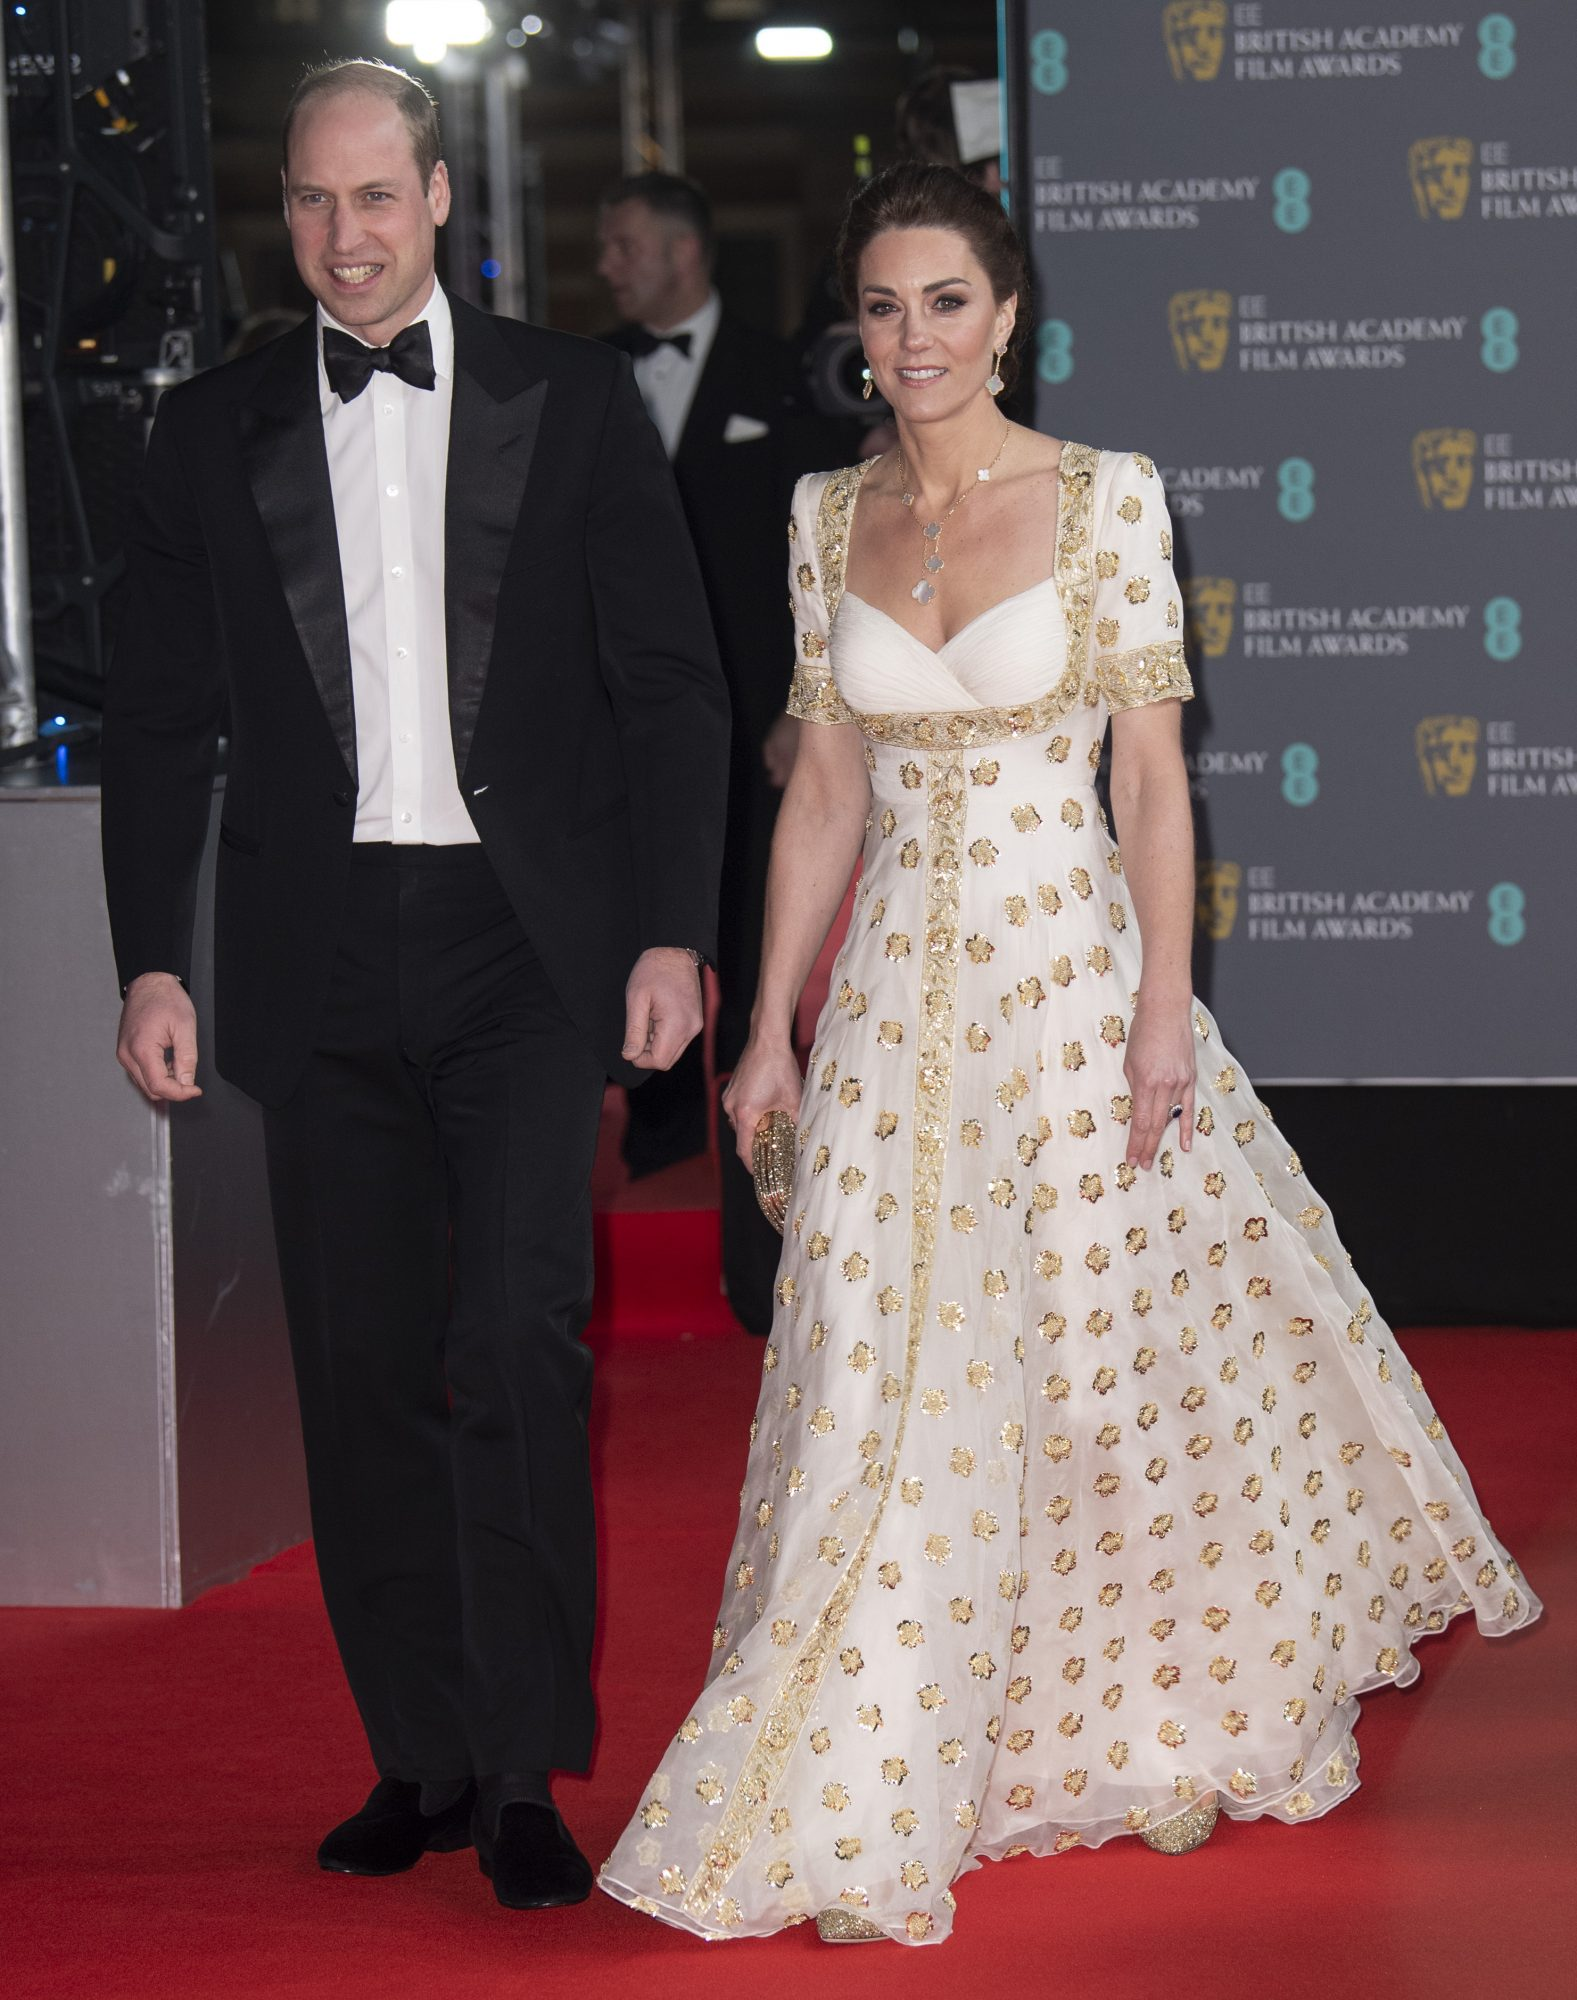 Prince William, Duke of Cambridge and Catherine, Duchess of Cambridge attend the EE British Academy Film Awards 2020